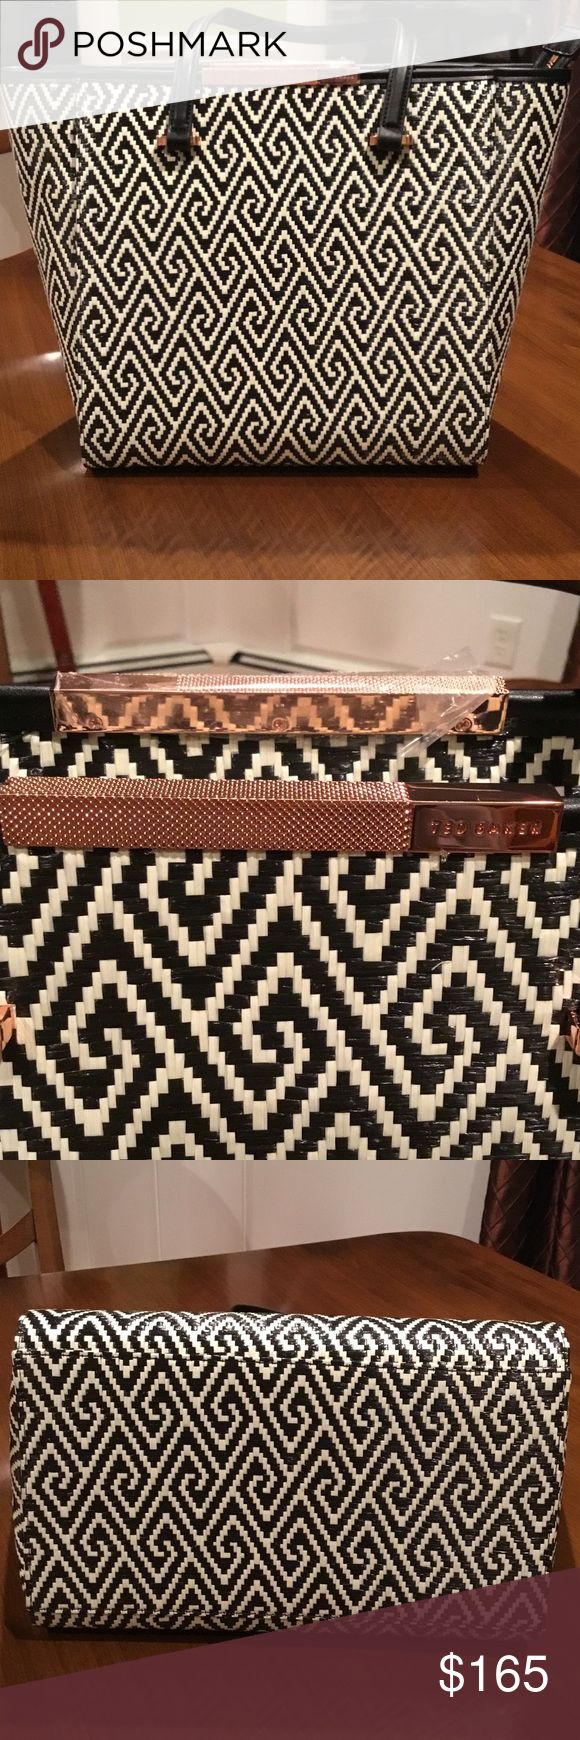 Ted Baker London woven large shopper GORGEOUS Ted Baker handbag with rose gold accents and beautiful green lining. Hardware is still covered with plastic to prevent scratching. Ted Baker London Bags Totes